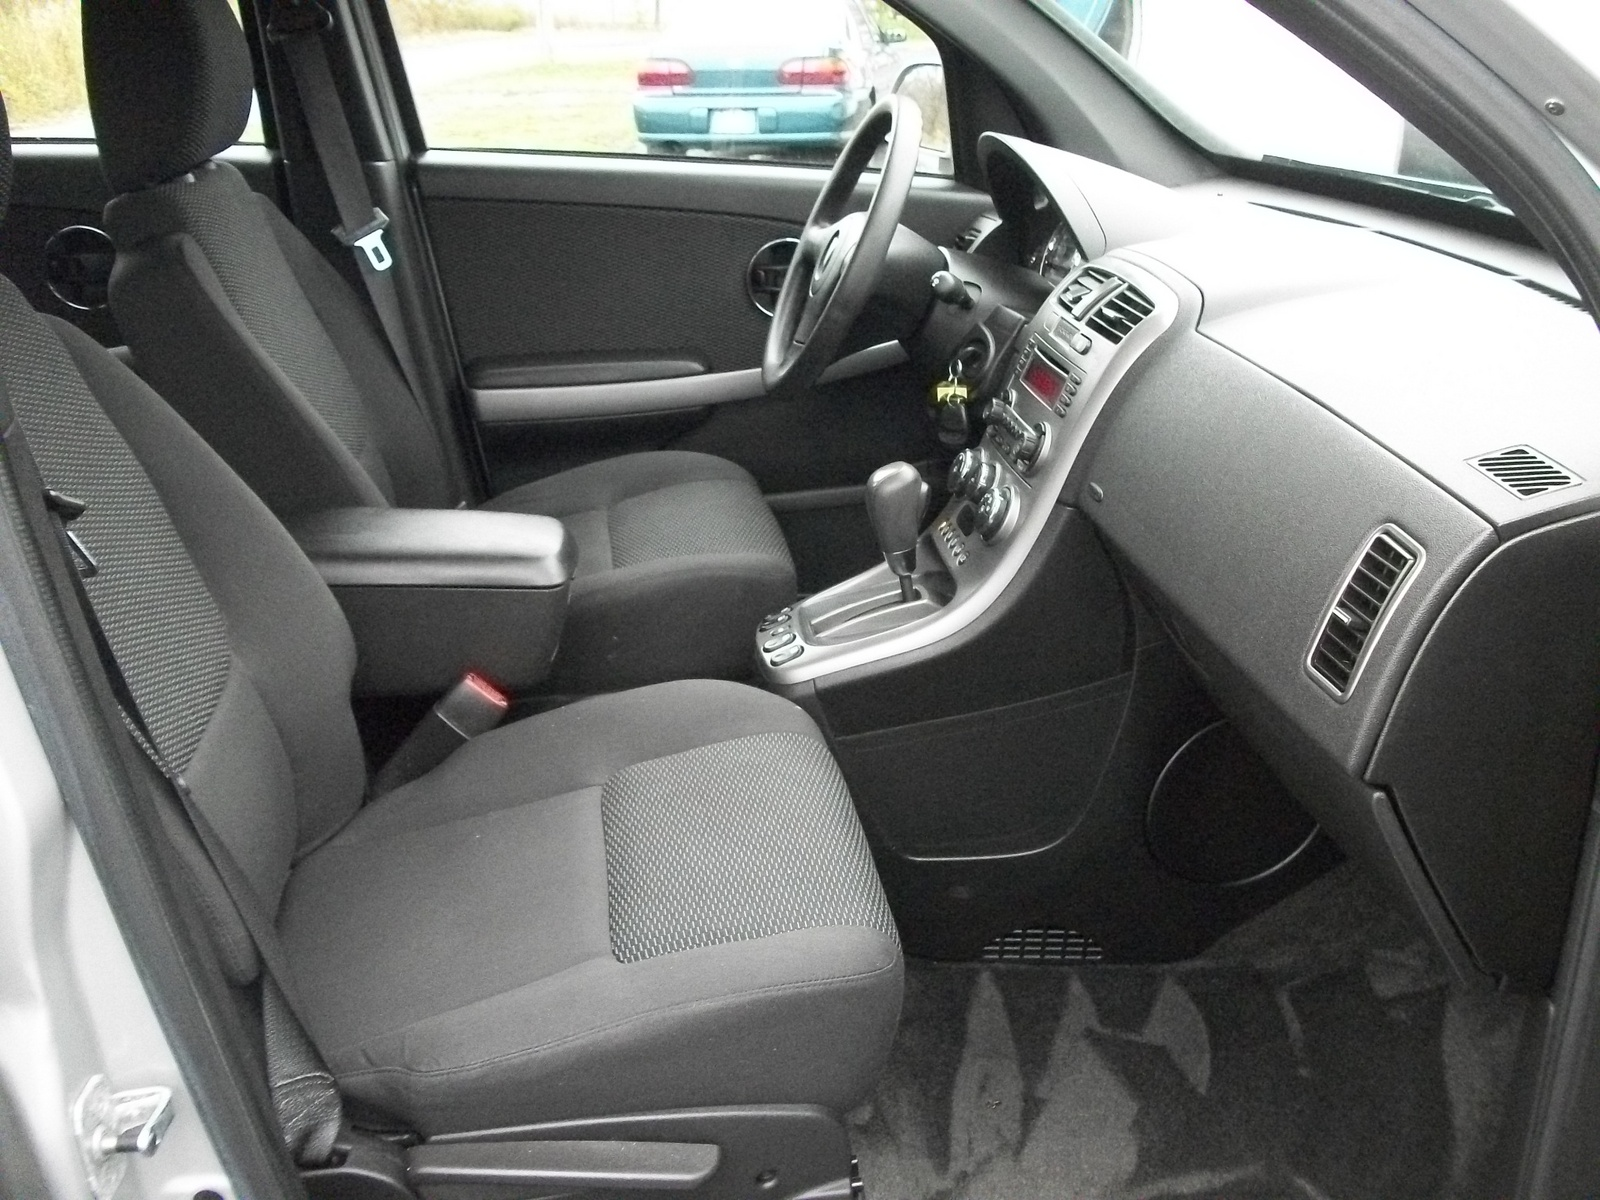 2006 pontiac torrent interior pictures cargurus for Inside 2007 torrent